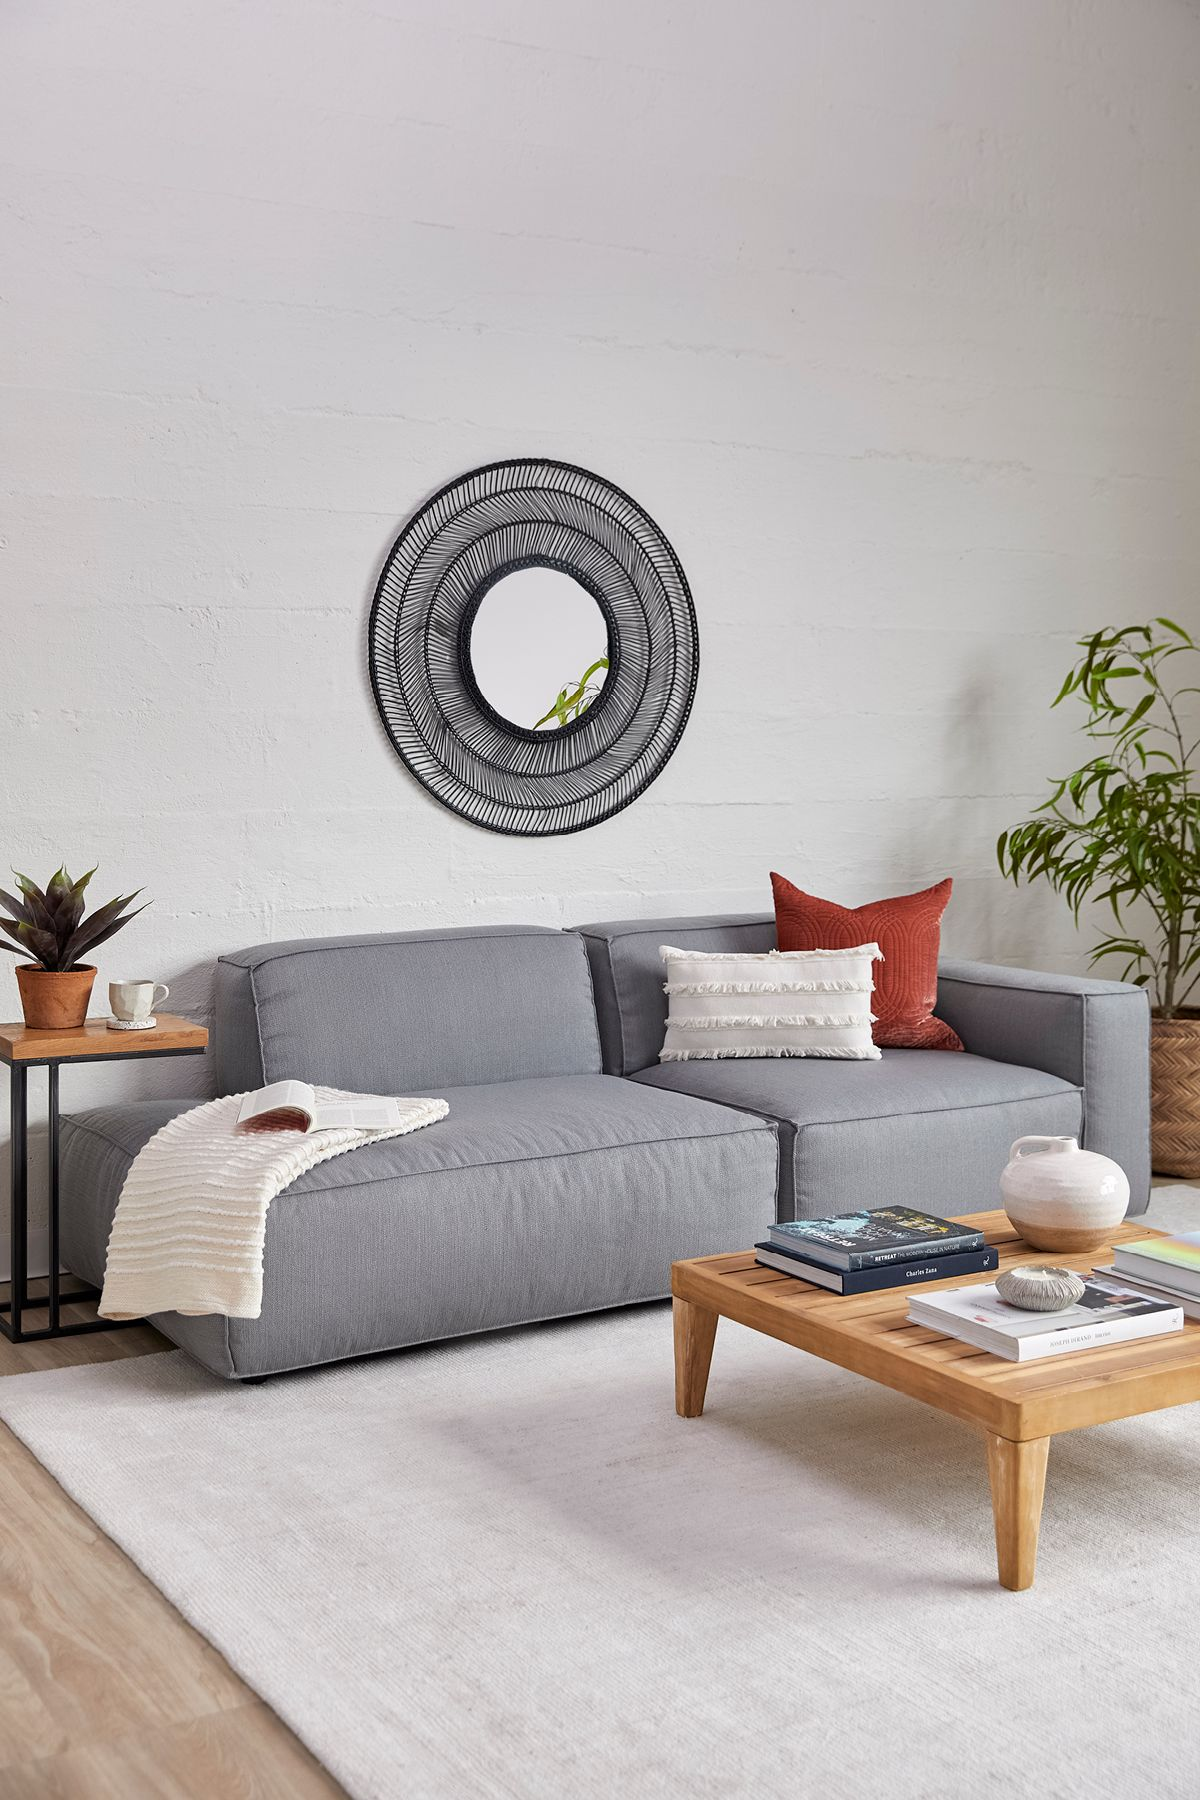 Solae Hush Gray Right Sectional Living Room Inspiration High Quality Furniture Home Decor Pictures about livingroom hush